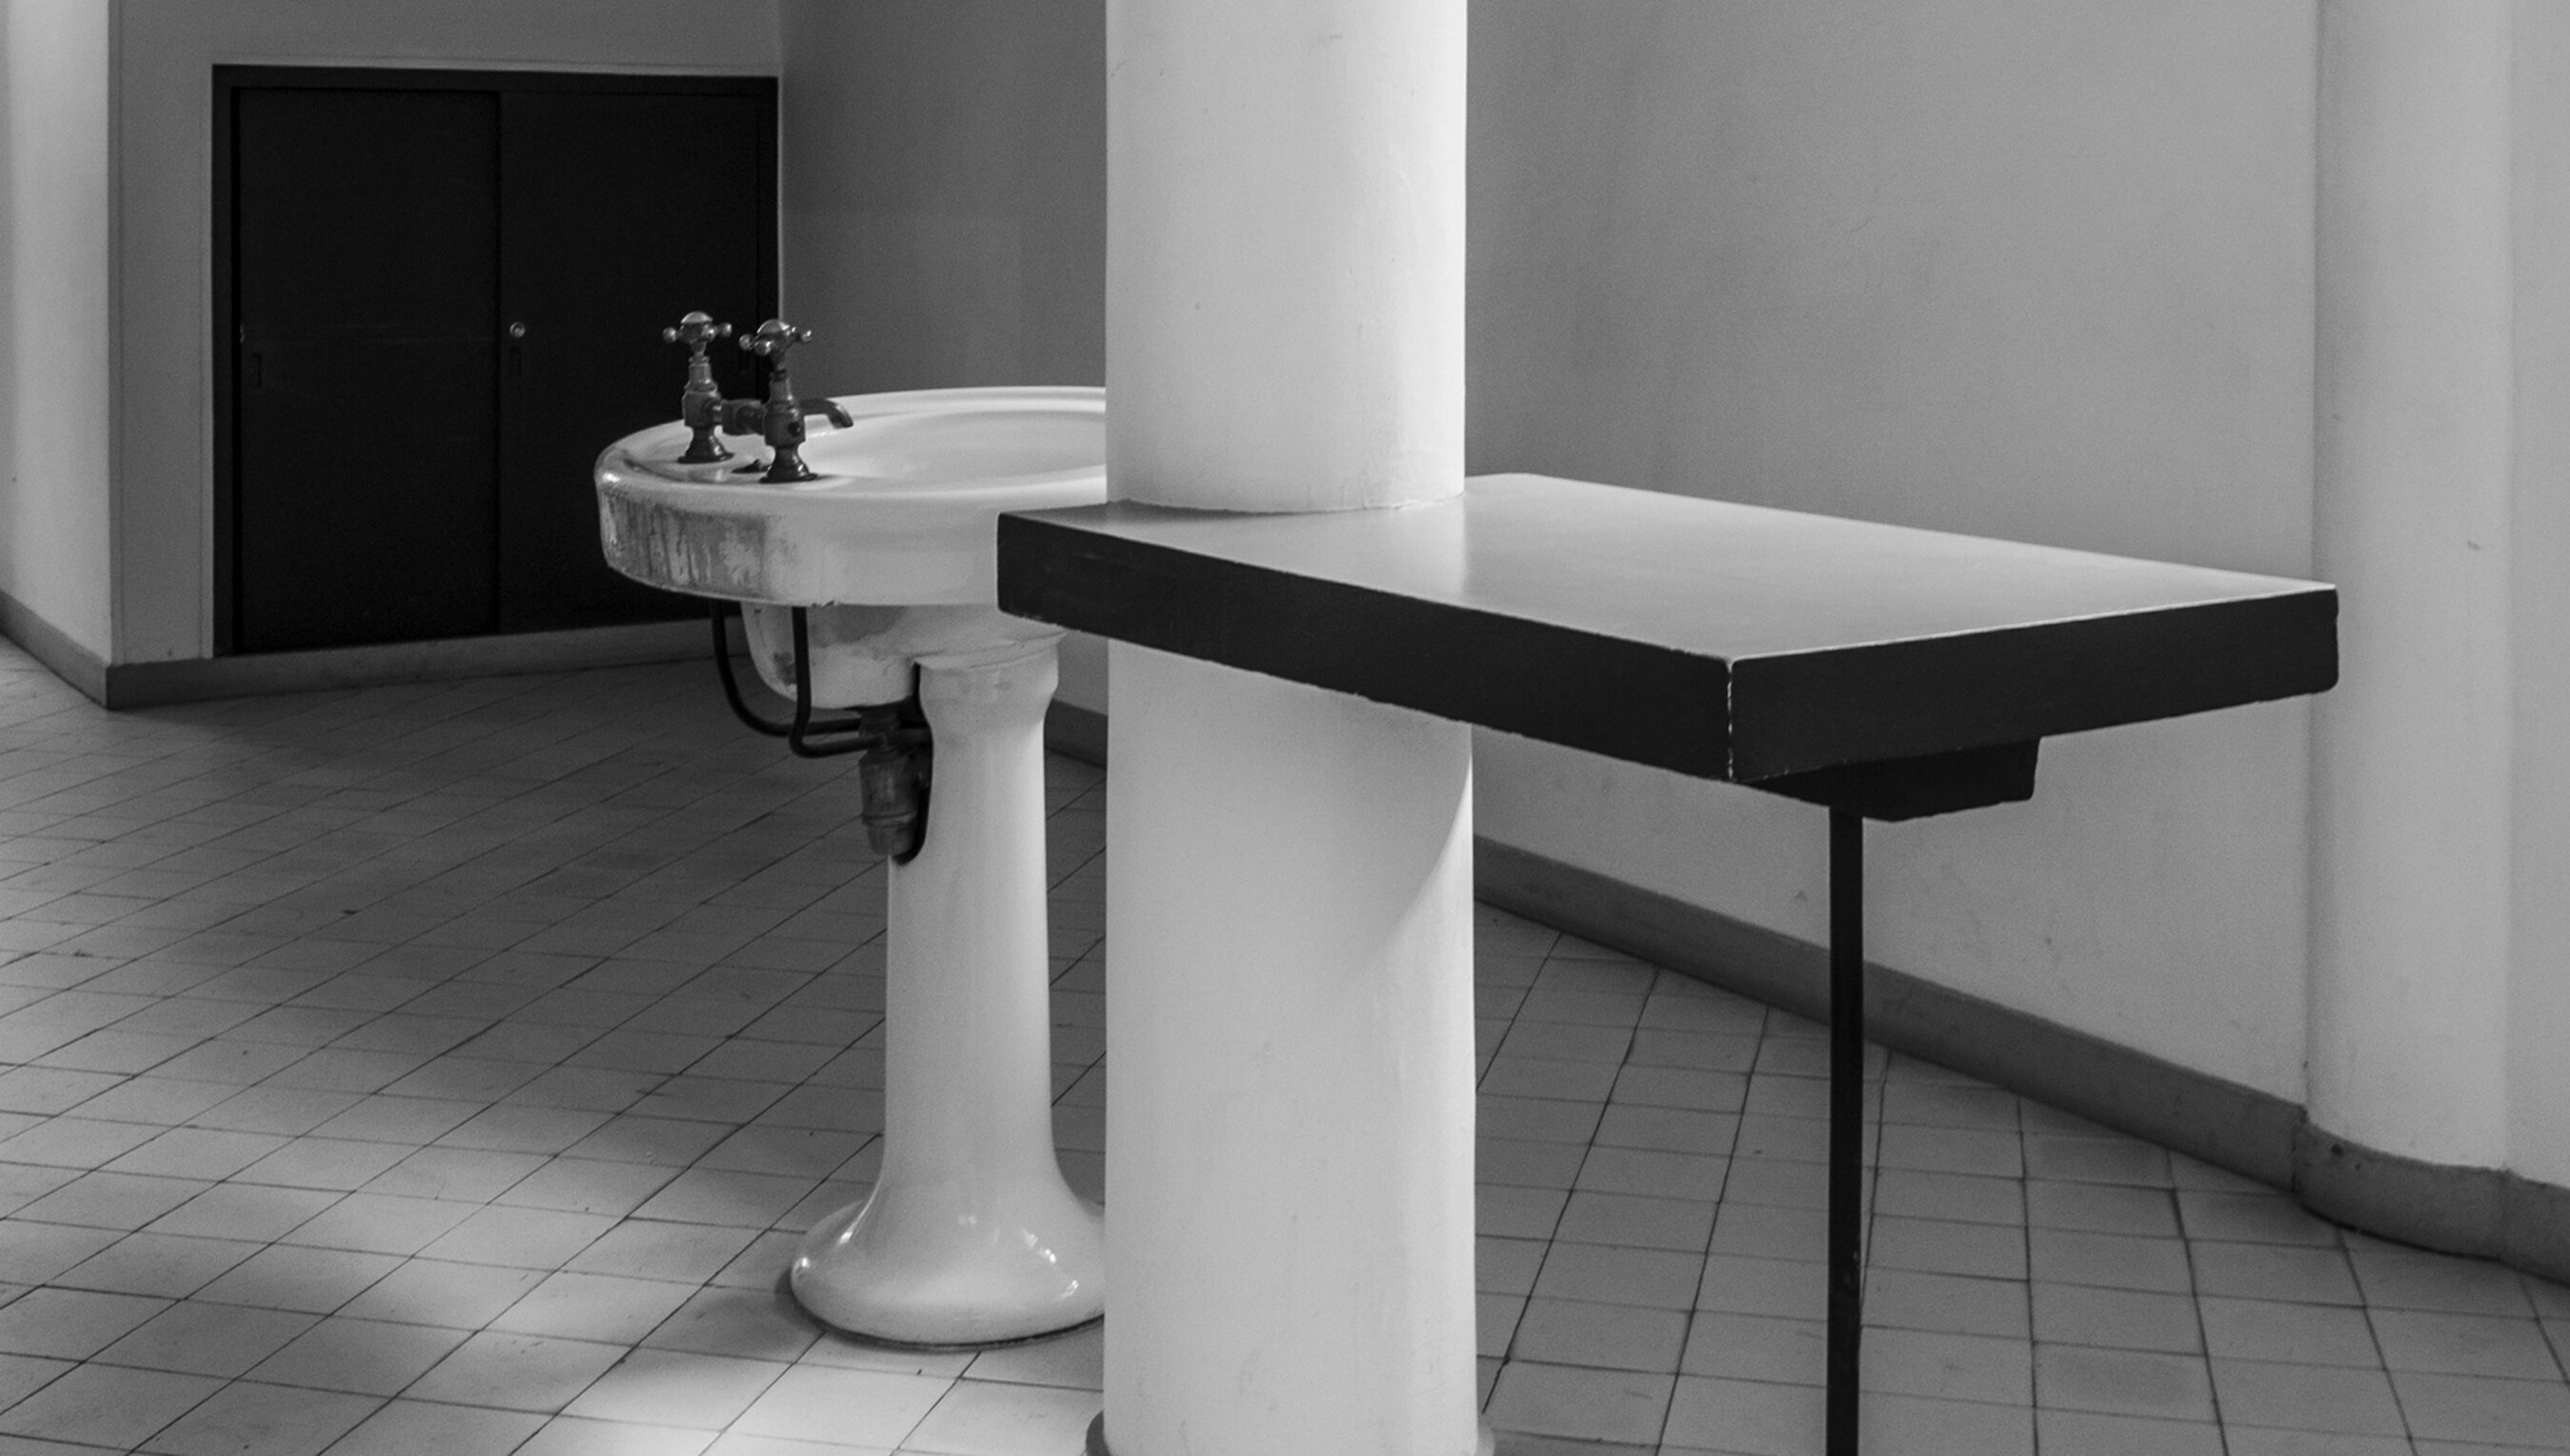 The sink in the hall: how pandemics transform architecture | Psyche